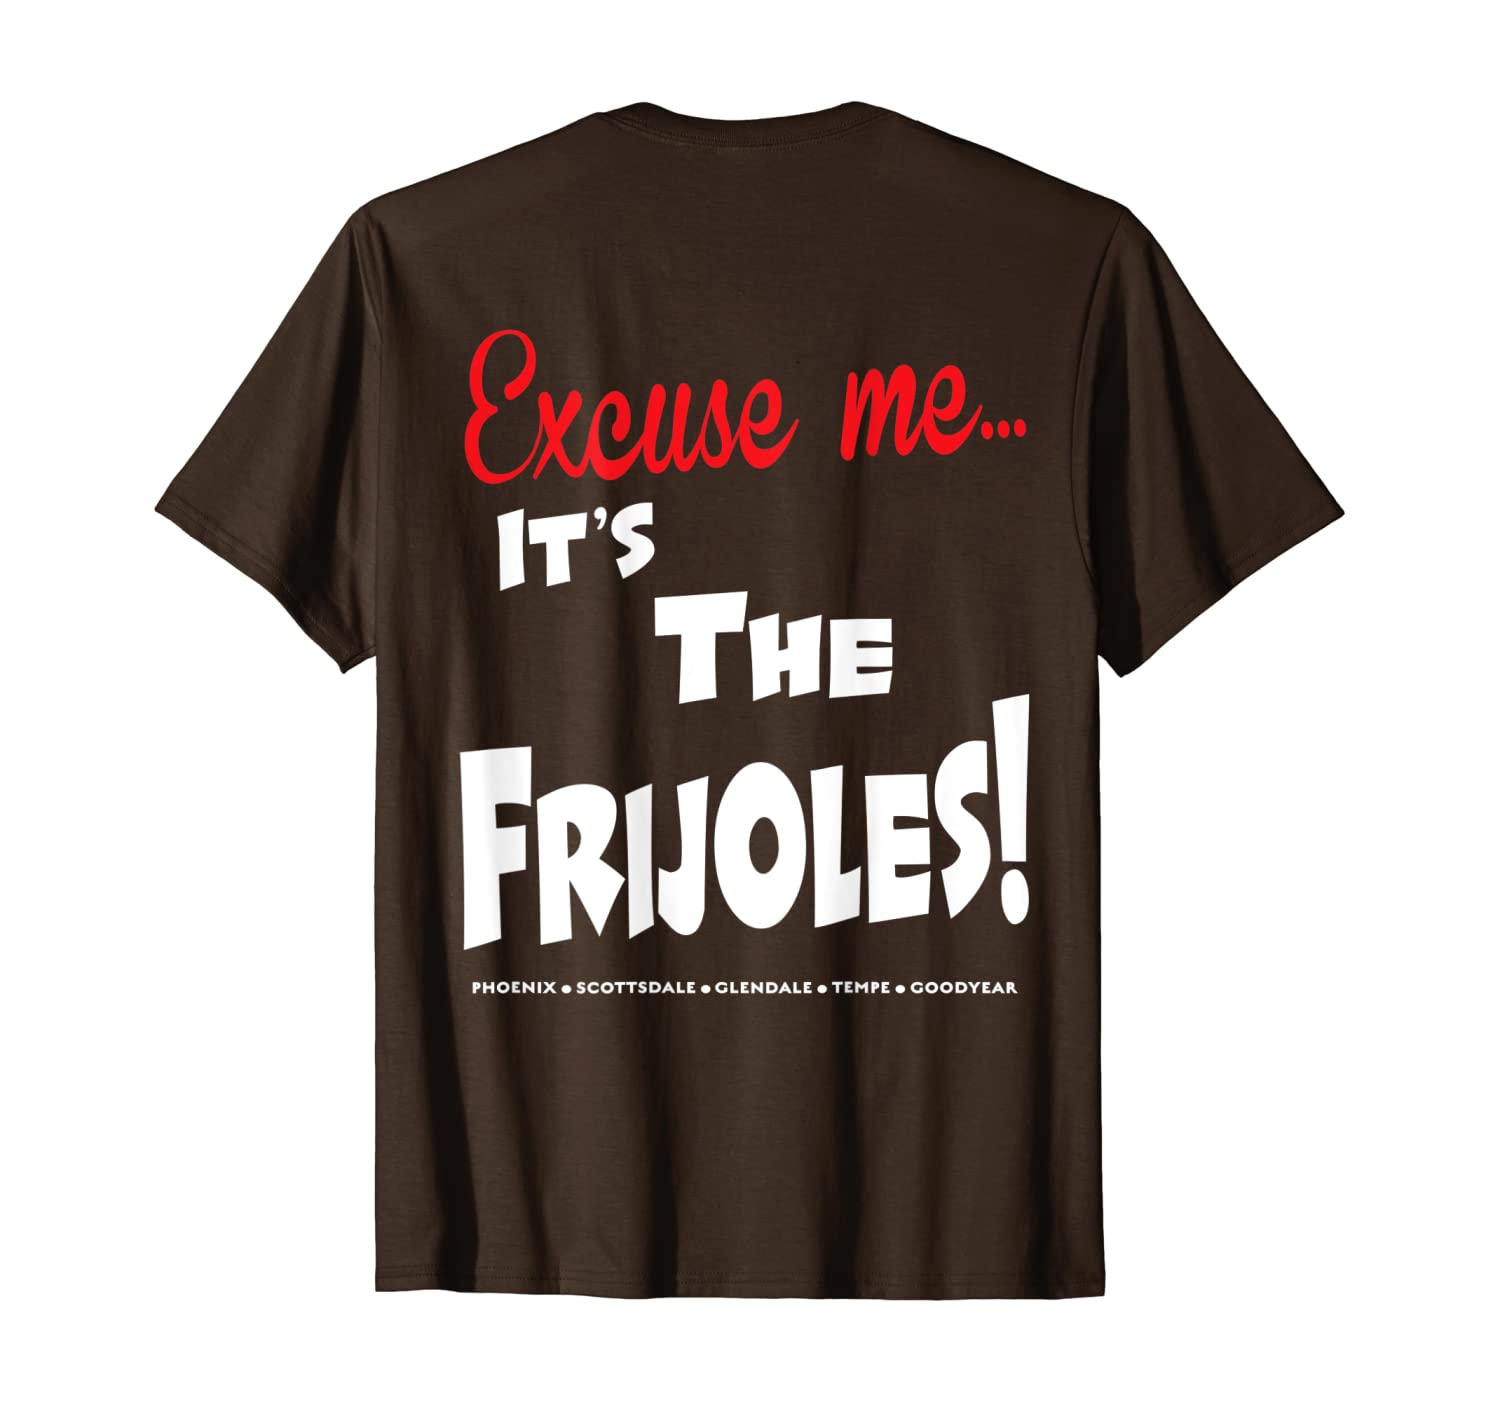 Amazon Com Classic Excuse Me Frijoles Shirt Clothing Unlike traditional reference grammars, each topic is explained using authentic video examples. amazon com